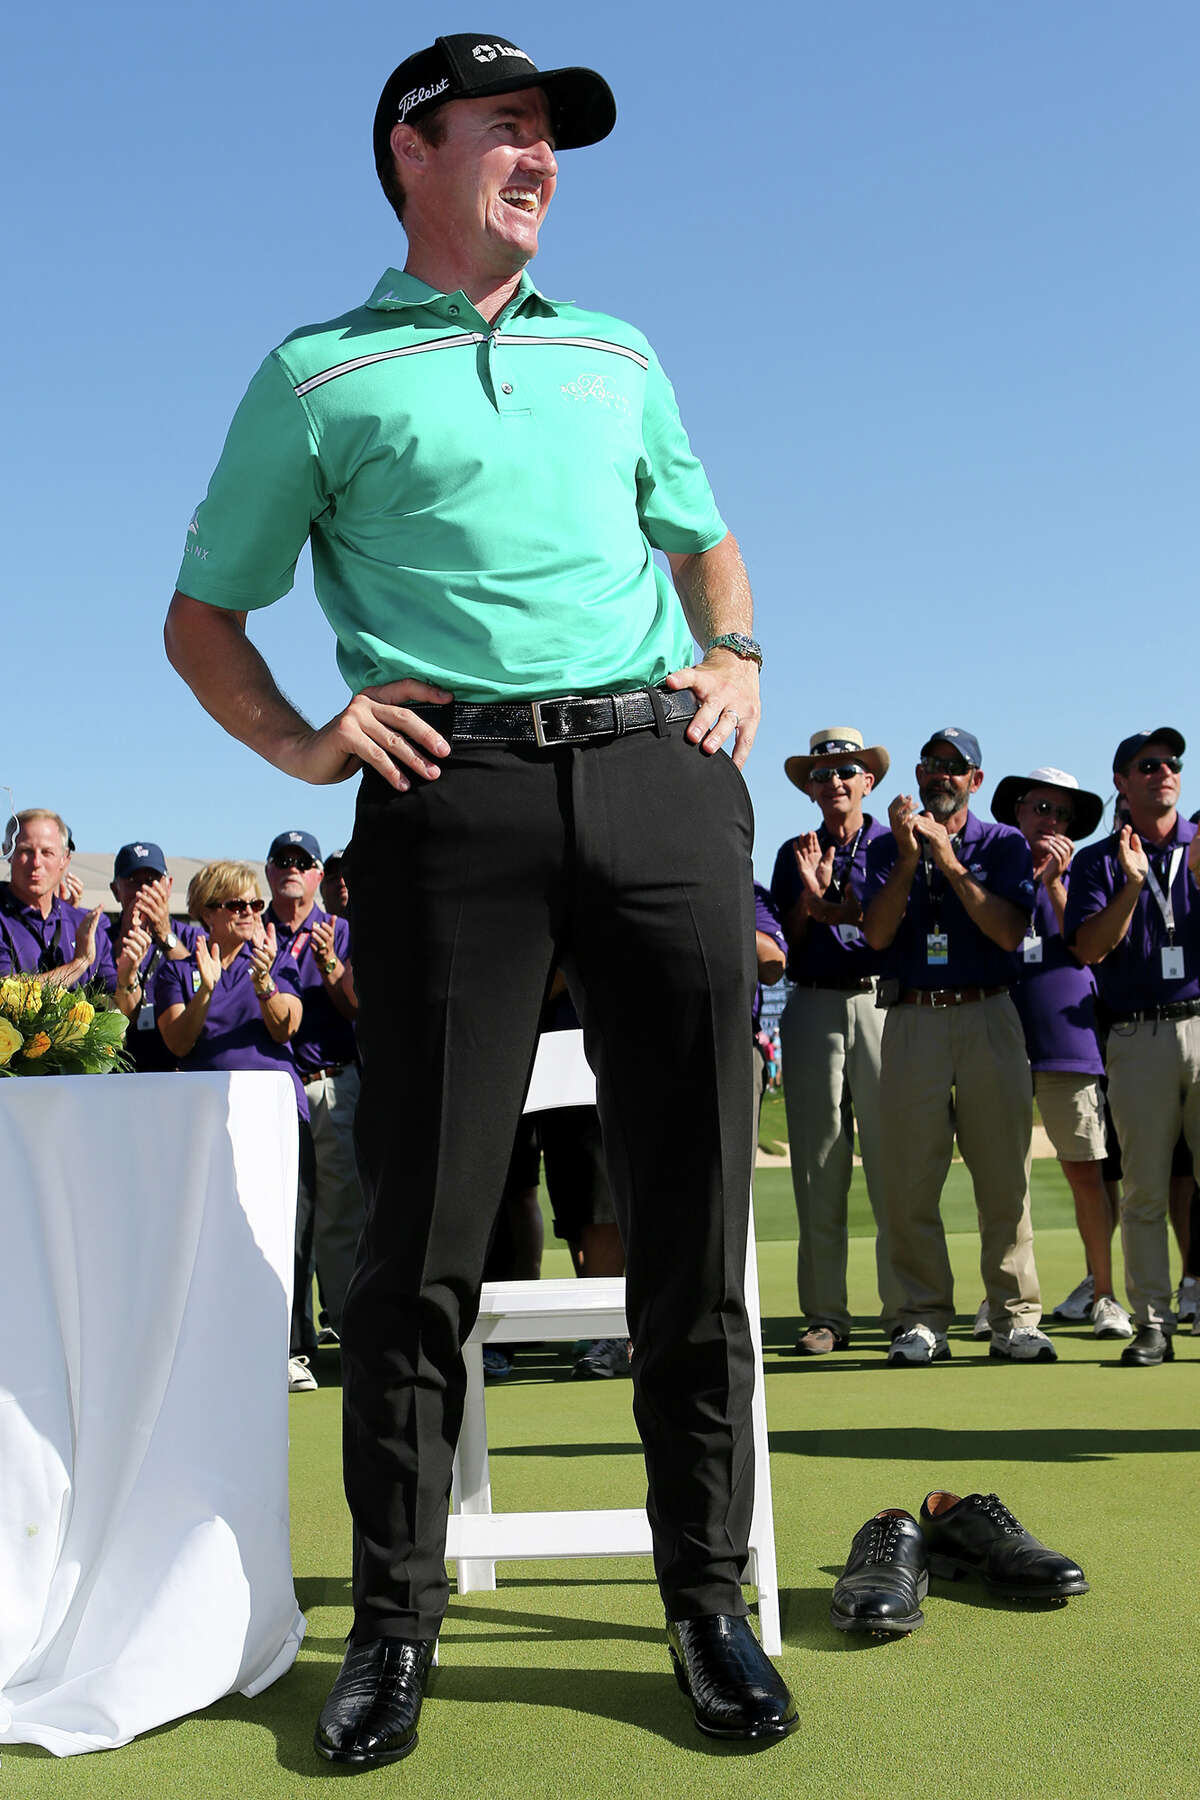 Boerne's Jimmy Walker shows off his championship boots after winning the 2015 Valero Texas Open at TPC San Antonio. Walker was 11 under for the tournament and will defend his title this year against some of the best golfers in the world.Click through to see some of the big names competing in the 2016 Valero Texas Open